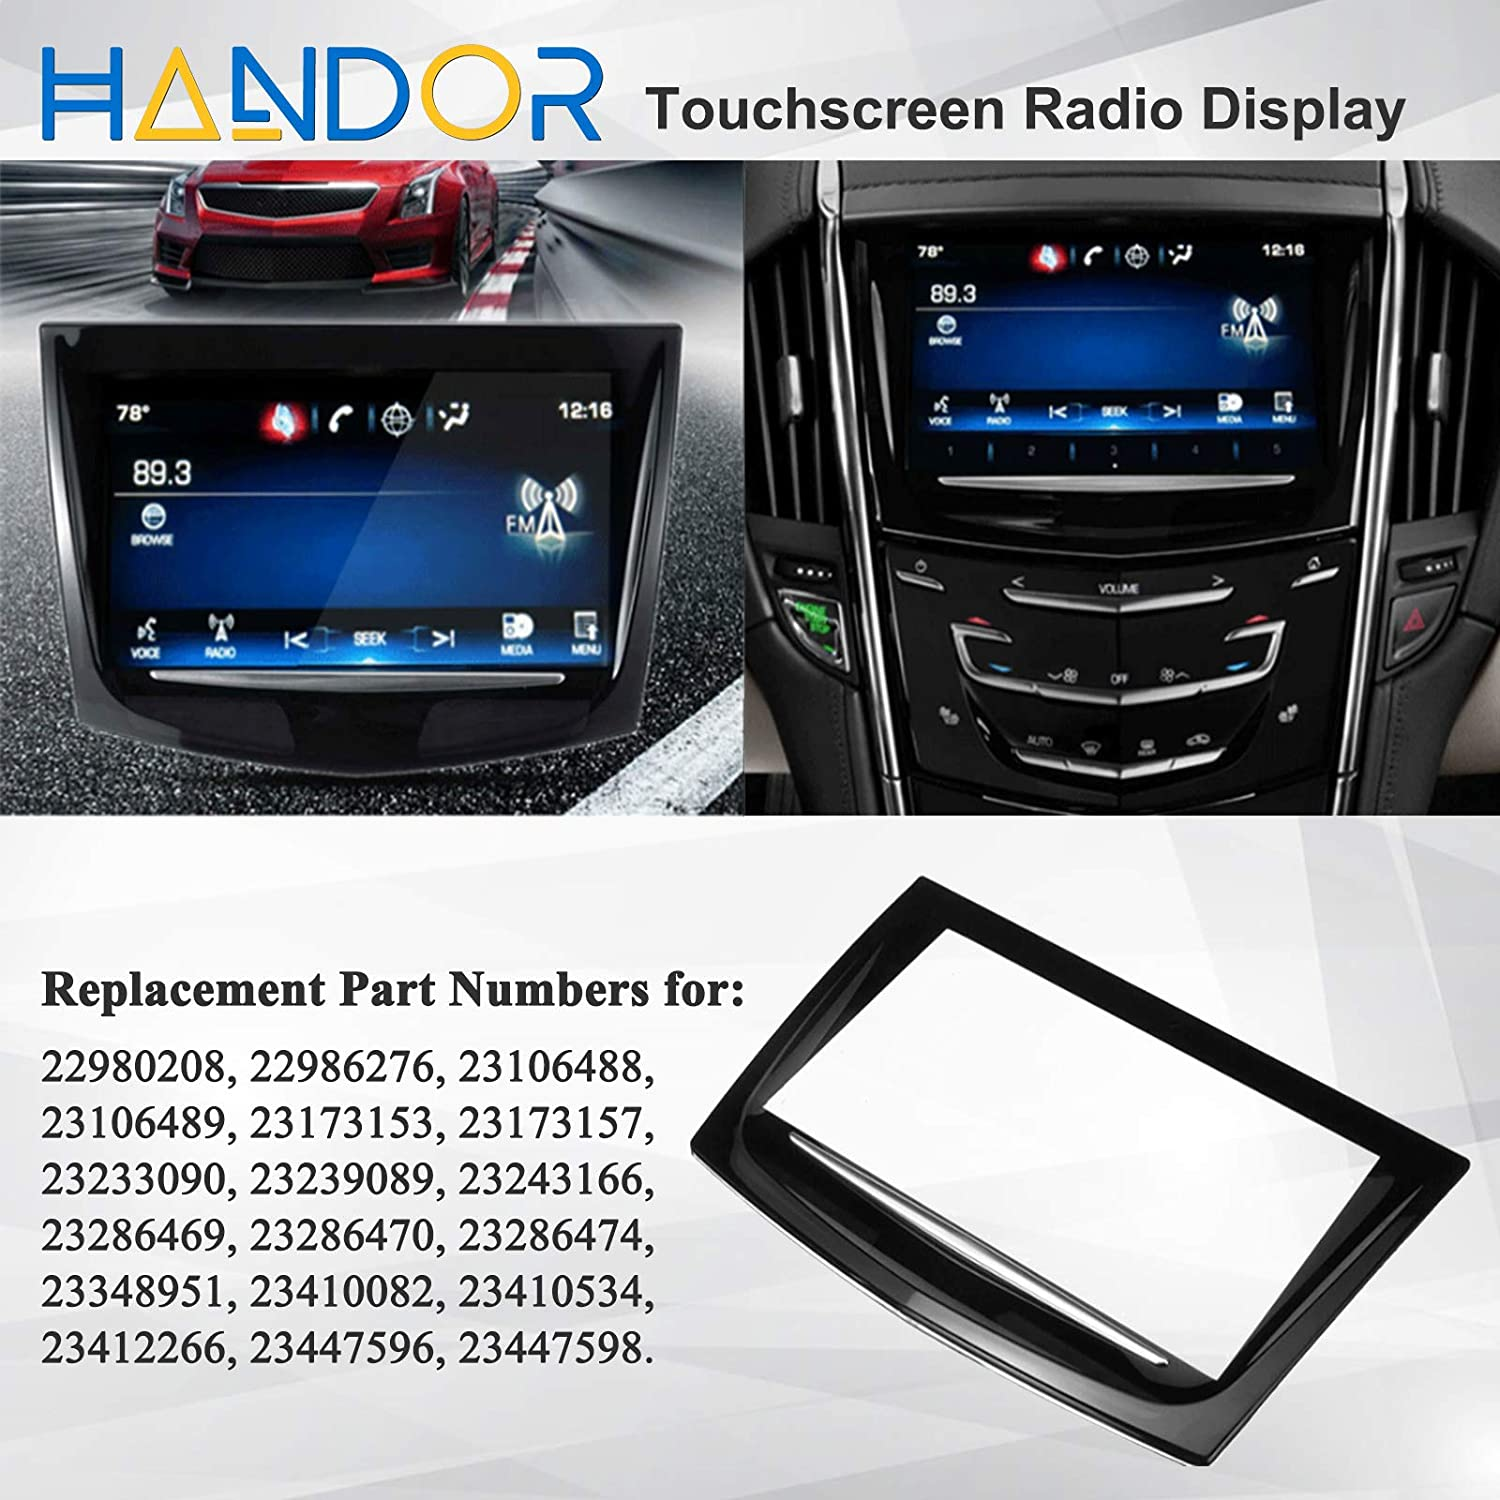 Handor CUE Replacement Touch Screen Display Compatible with Cadillac ATS Escalade SRX XTS ELR CTS CTS 2013 2014 2015 2016 2017